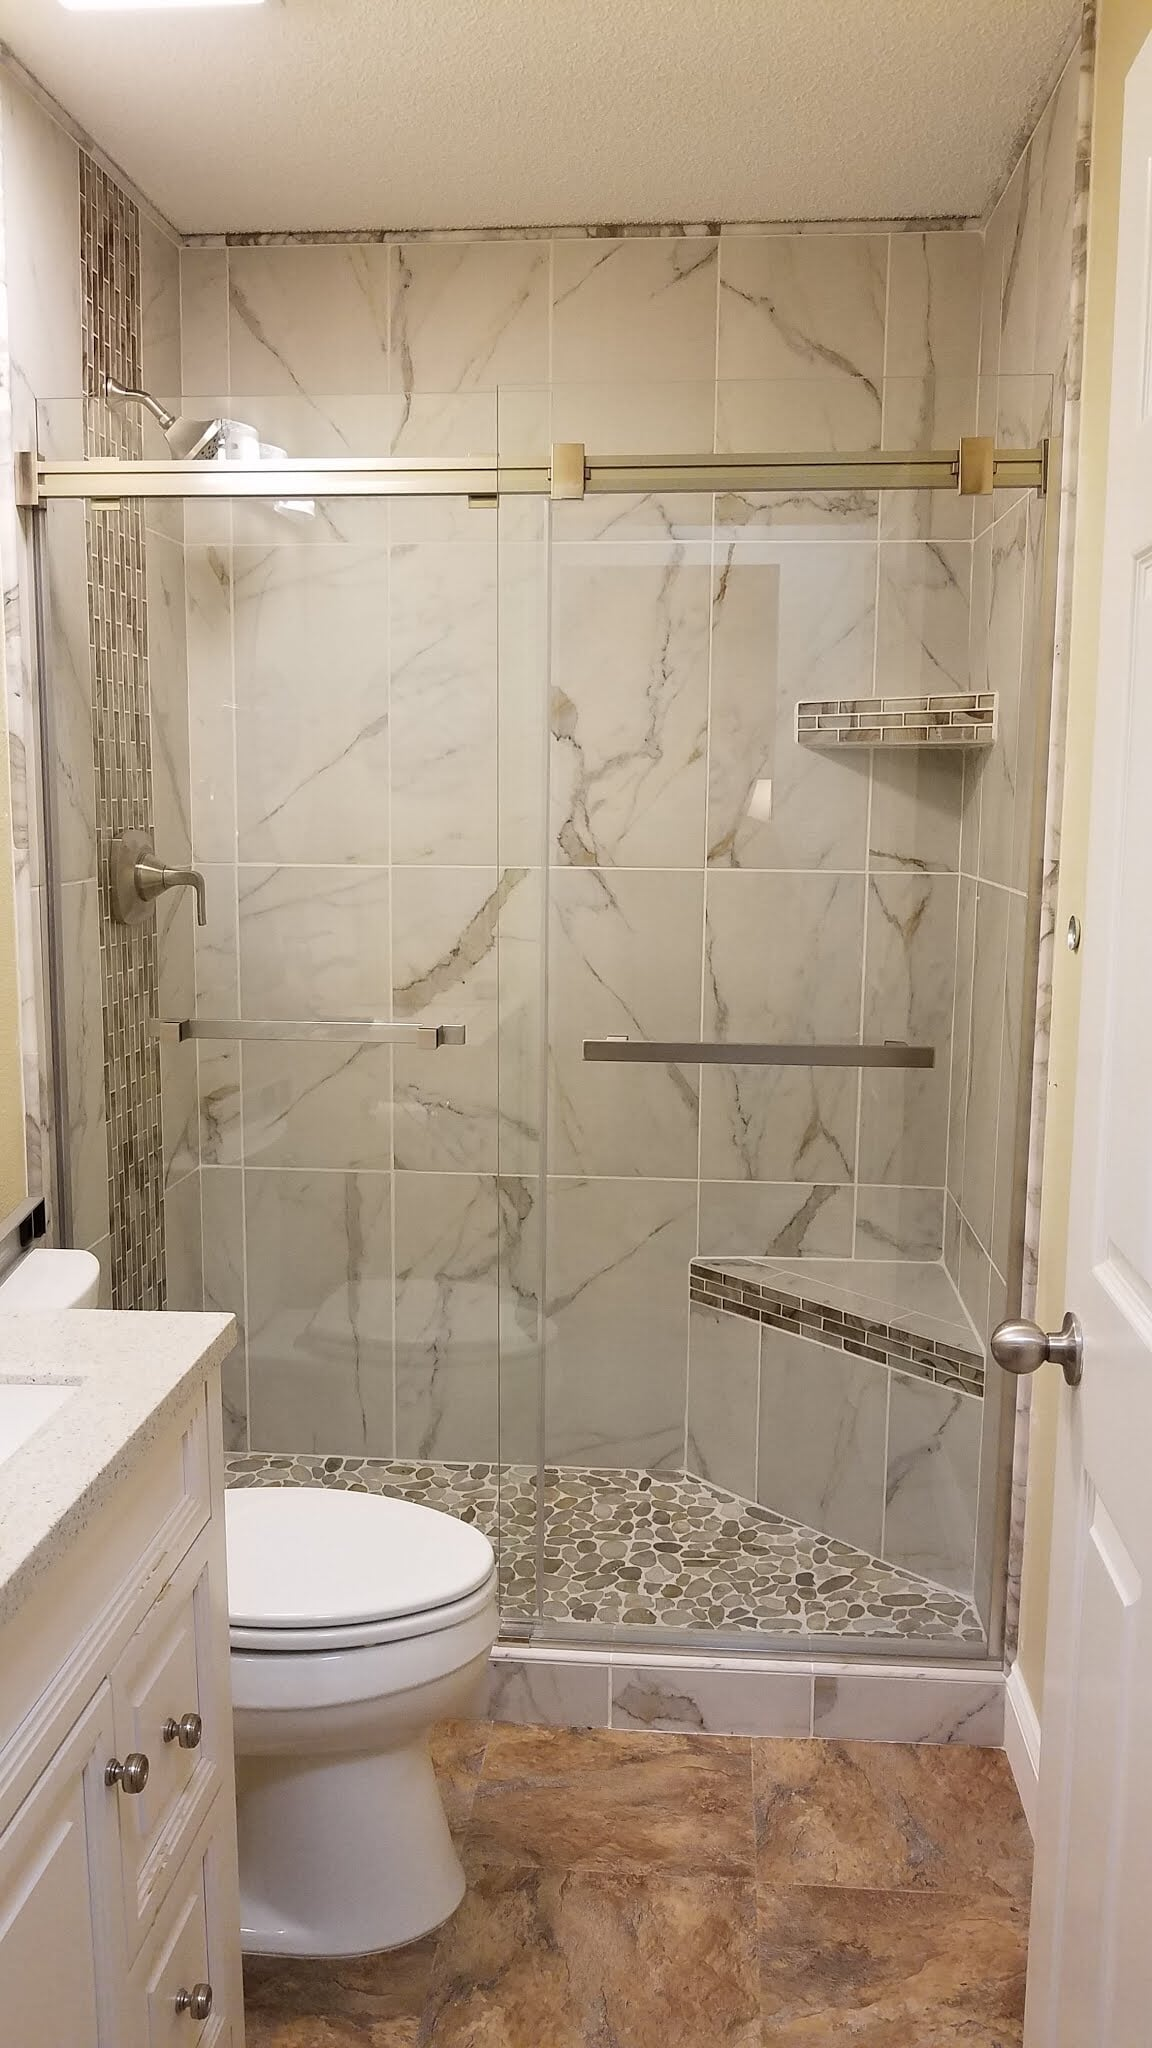 Tile shower installation in Gulf Shores, AL from G & J Tile & Floor Covering